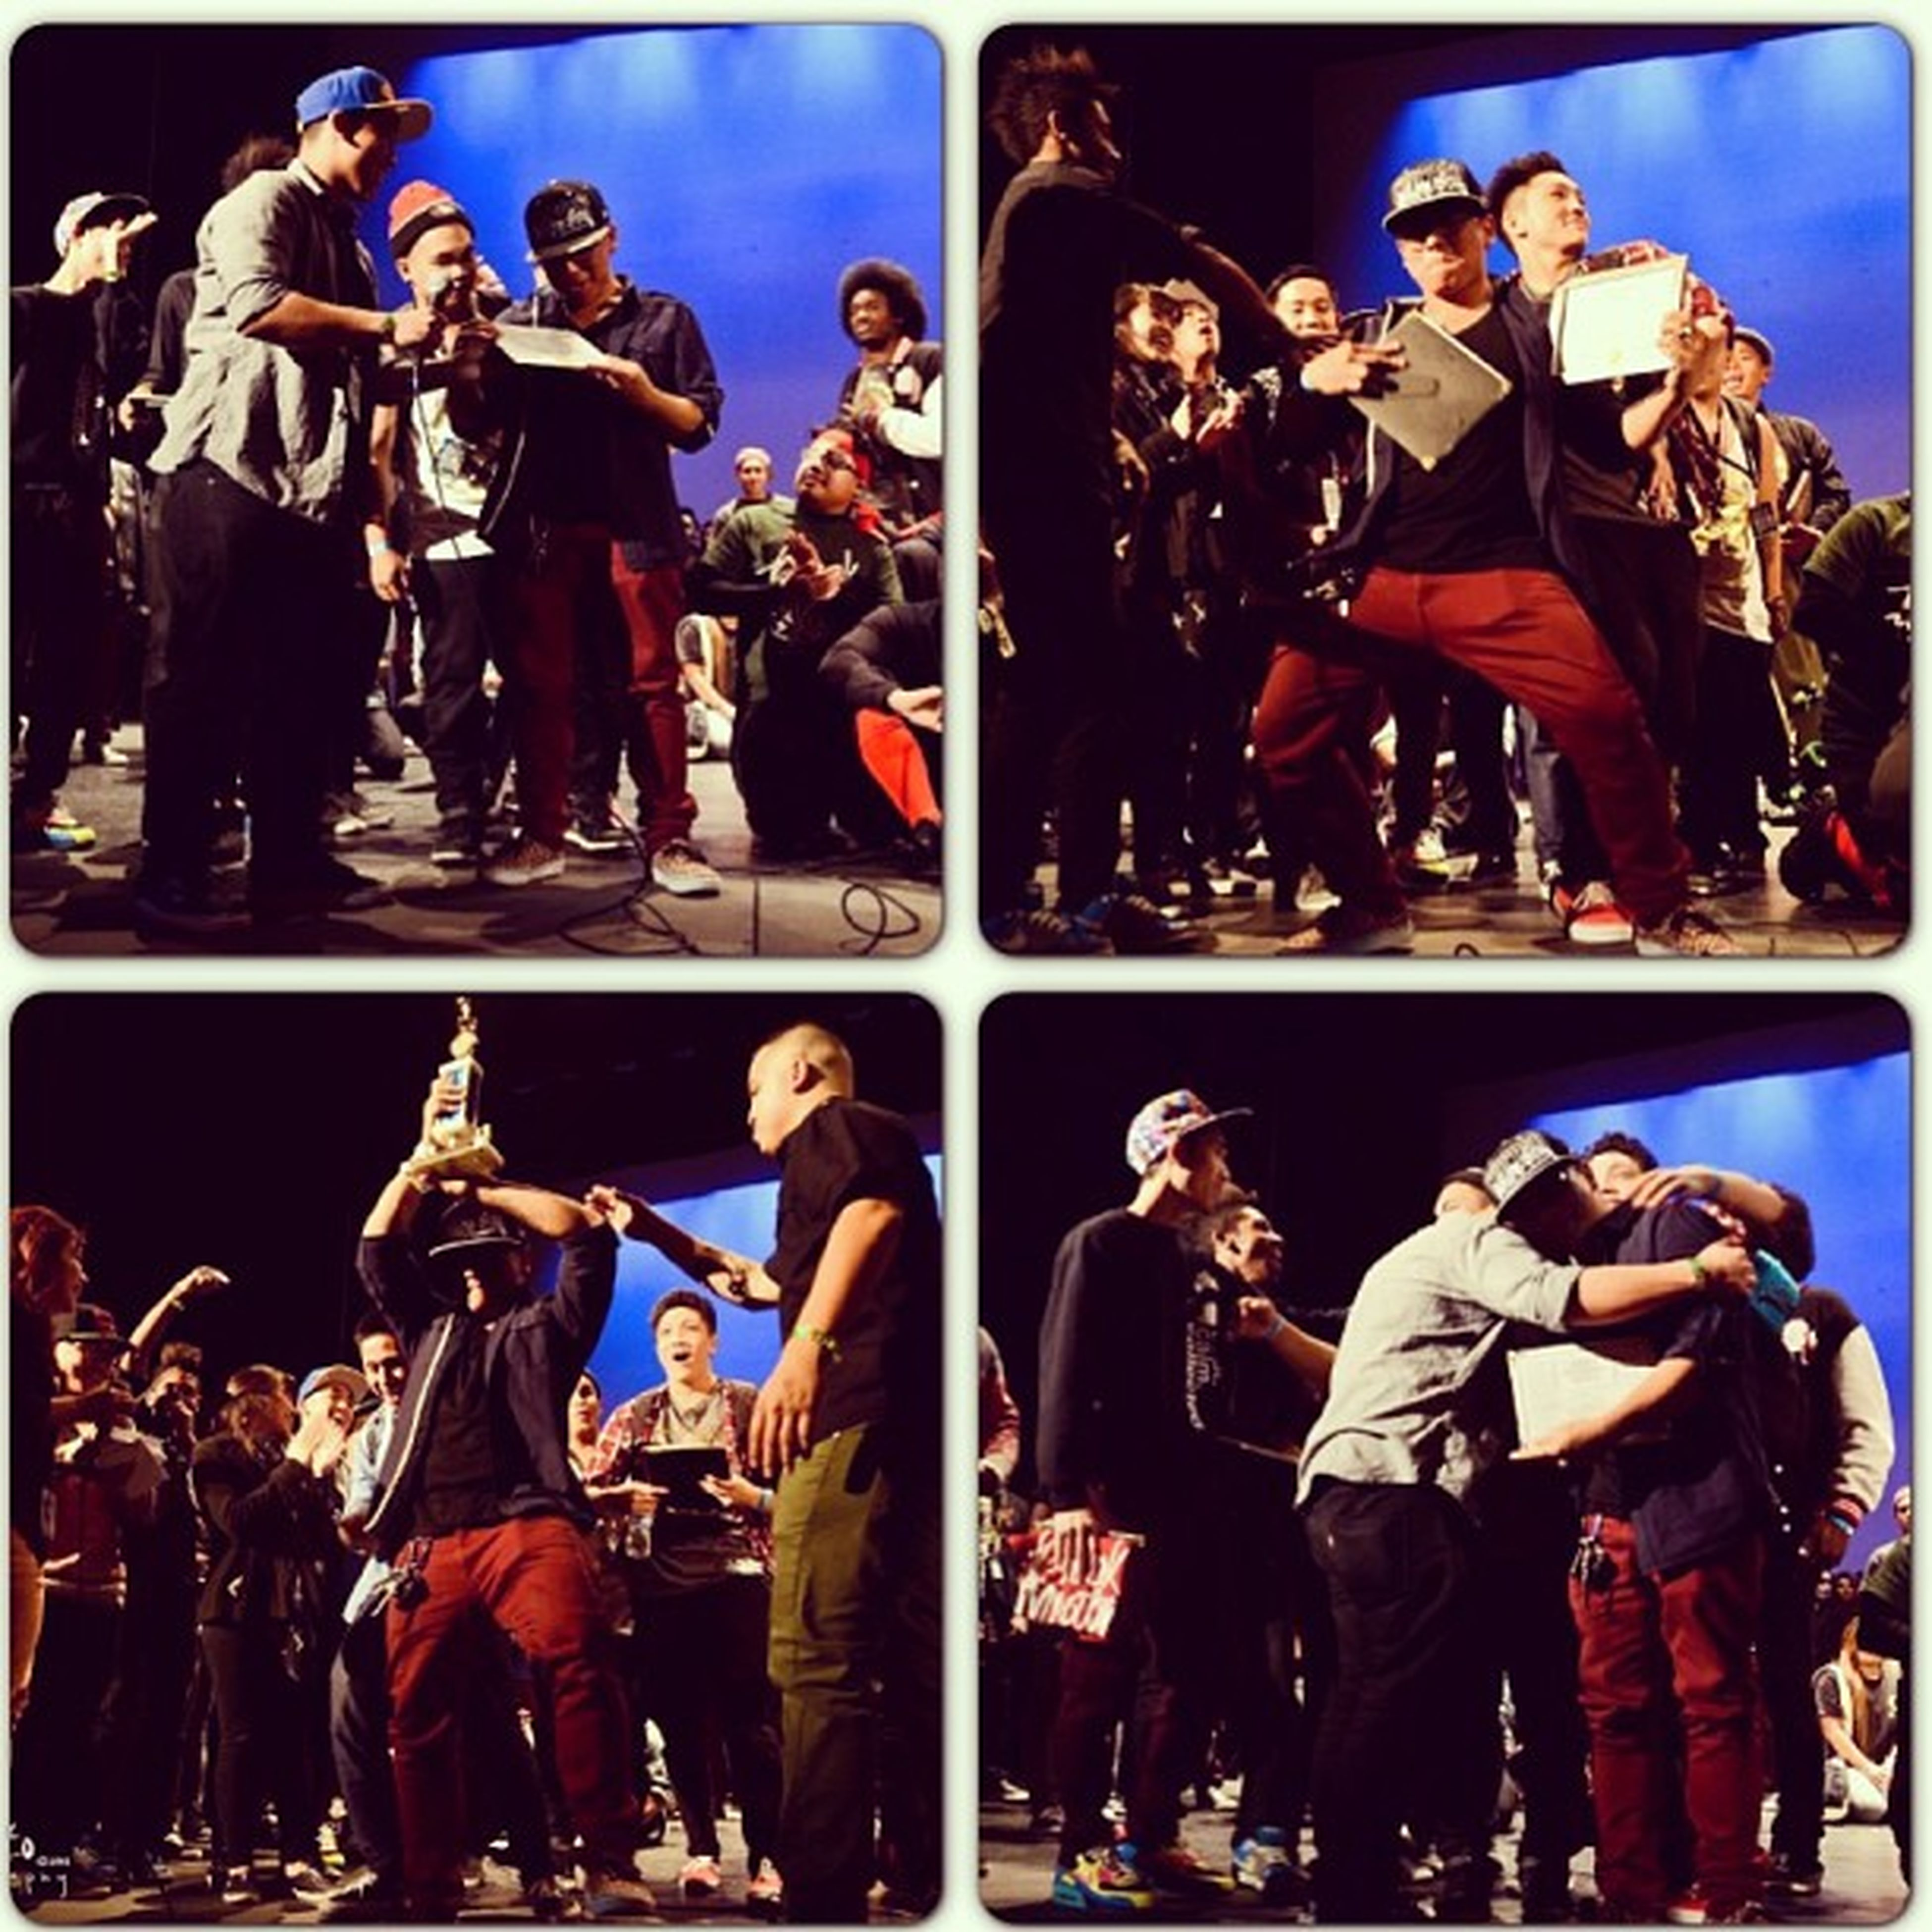 Kind of a TBT  I guess haha. This made me hella laugh 😂😂😂 Just some different emotions captured when placing at Breakthrough with @stepboys (1) Thanks Rillera (2) Hell yeah, 2 awards?! (3) Lion King (4) Love you ❤ Stepboys Imbookie Liveforeverandneverdie 3rdplace Mostawards LOL Thanks  Moments Holla  IdBeat Hugs Champions Notreally Couldausedthat1000dollars Wearethebrokestcrew DAMNIT Loveyou